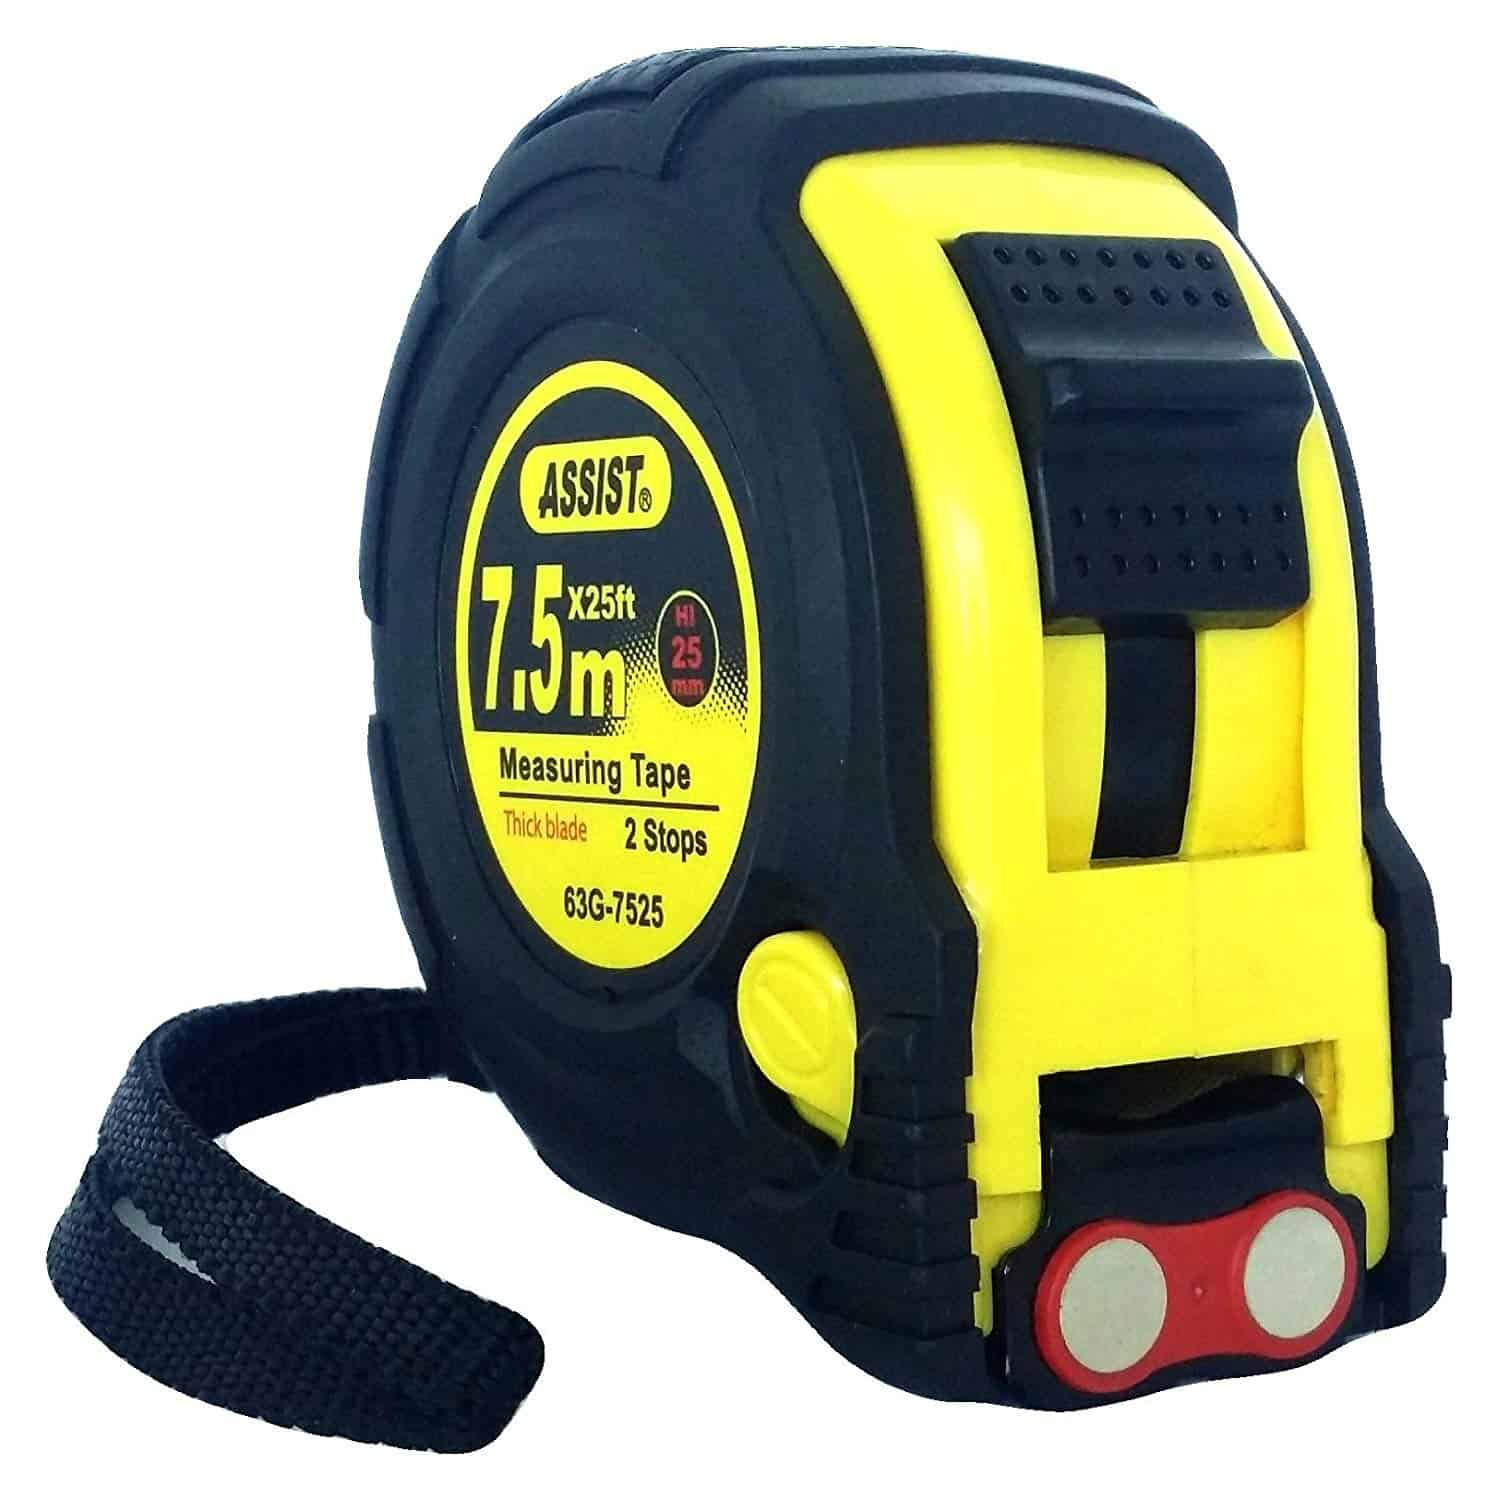 ASSIST-tape measures 25 ft by 1 inch with metric markings included, magnetic feature and rubber case